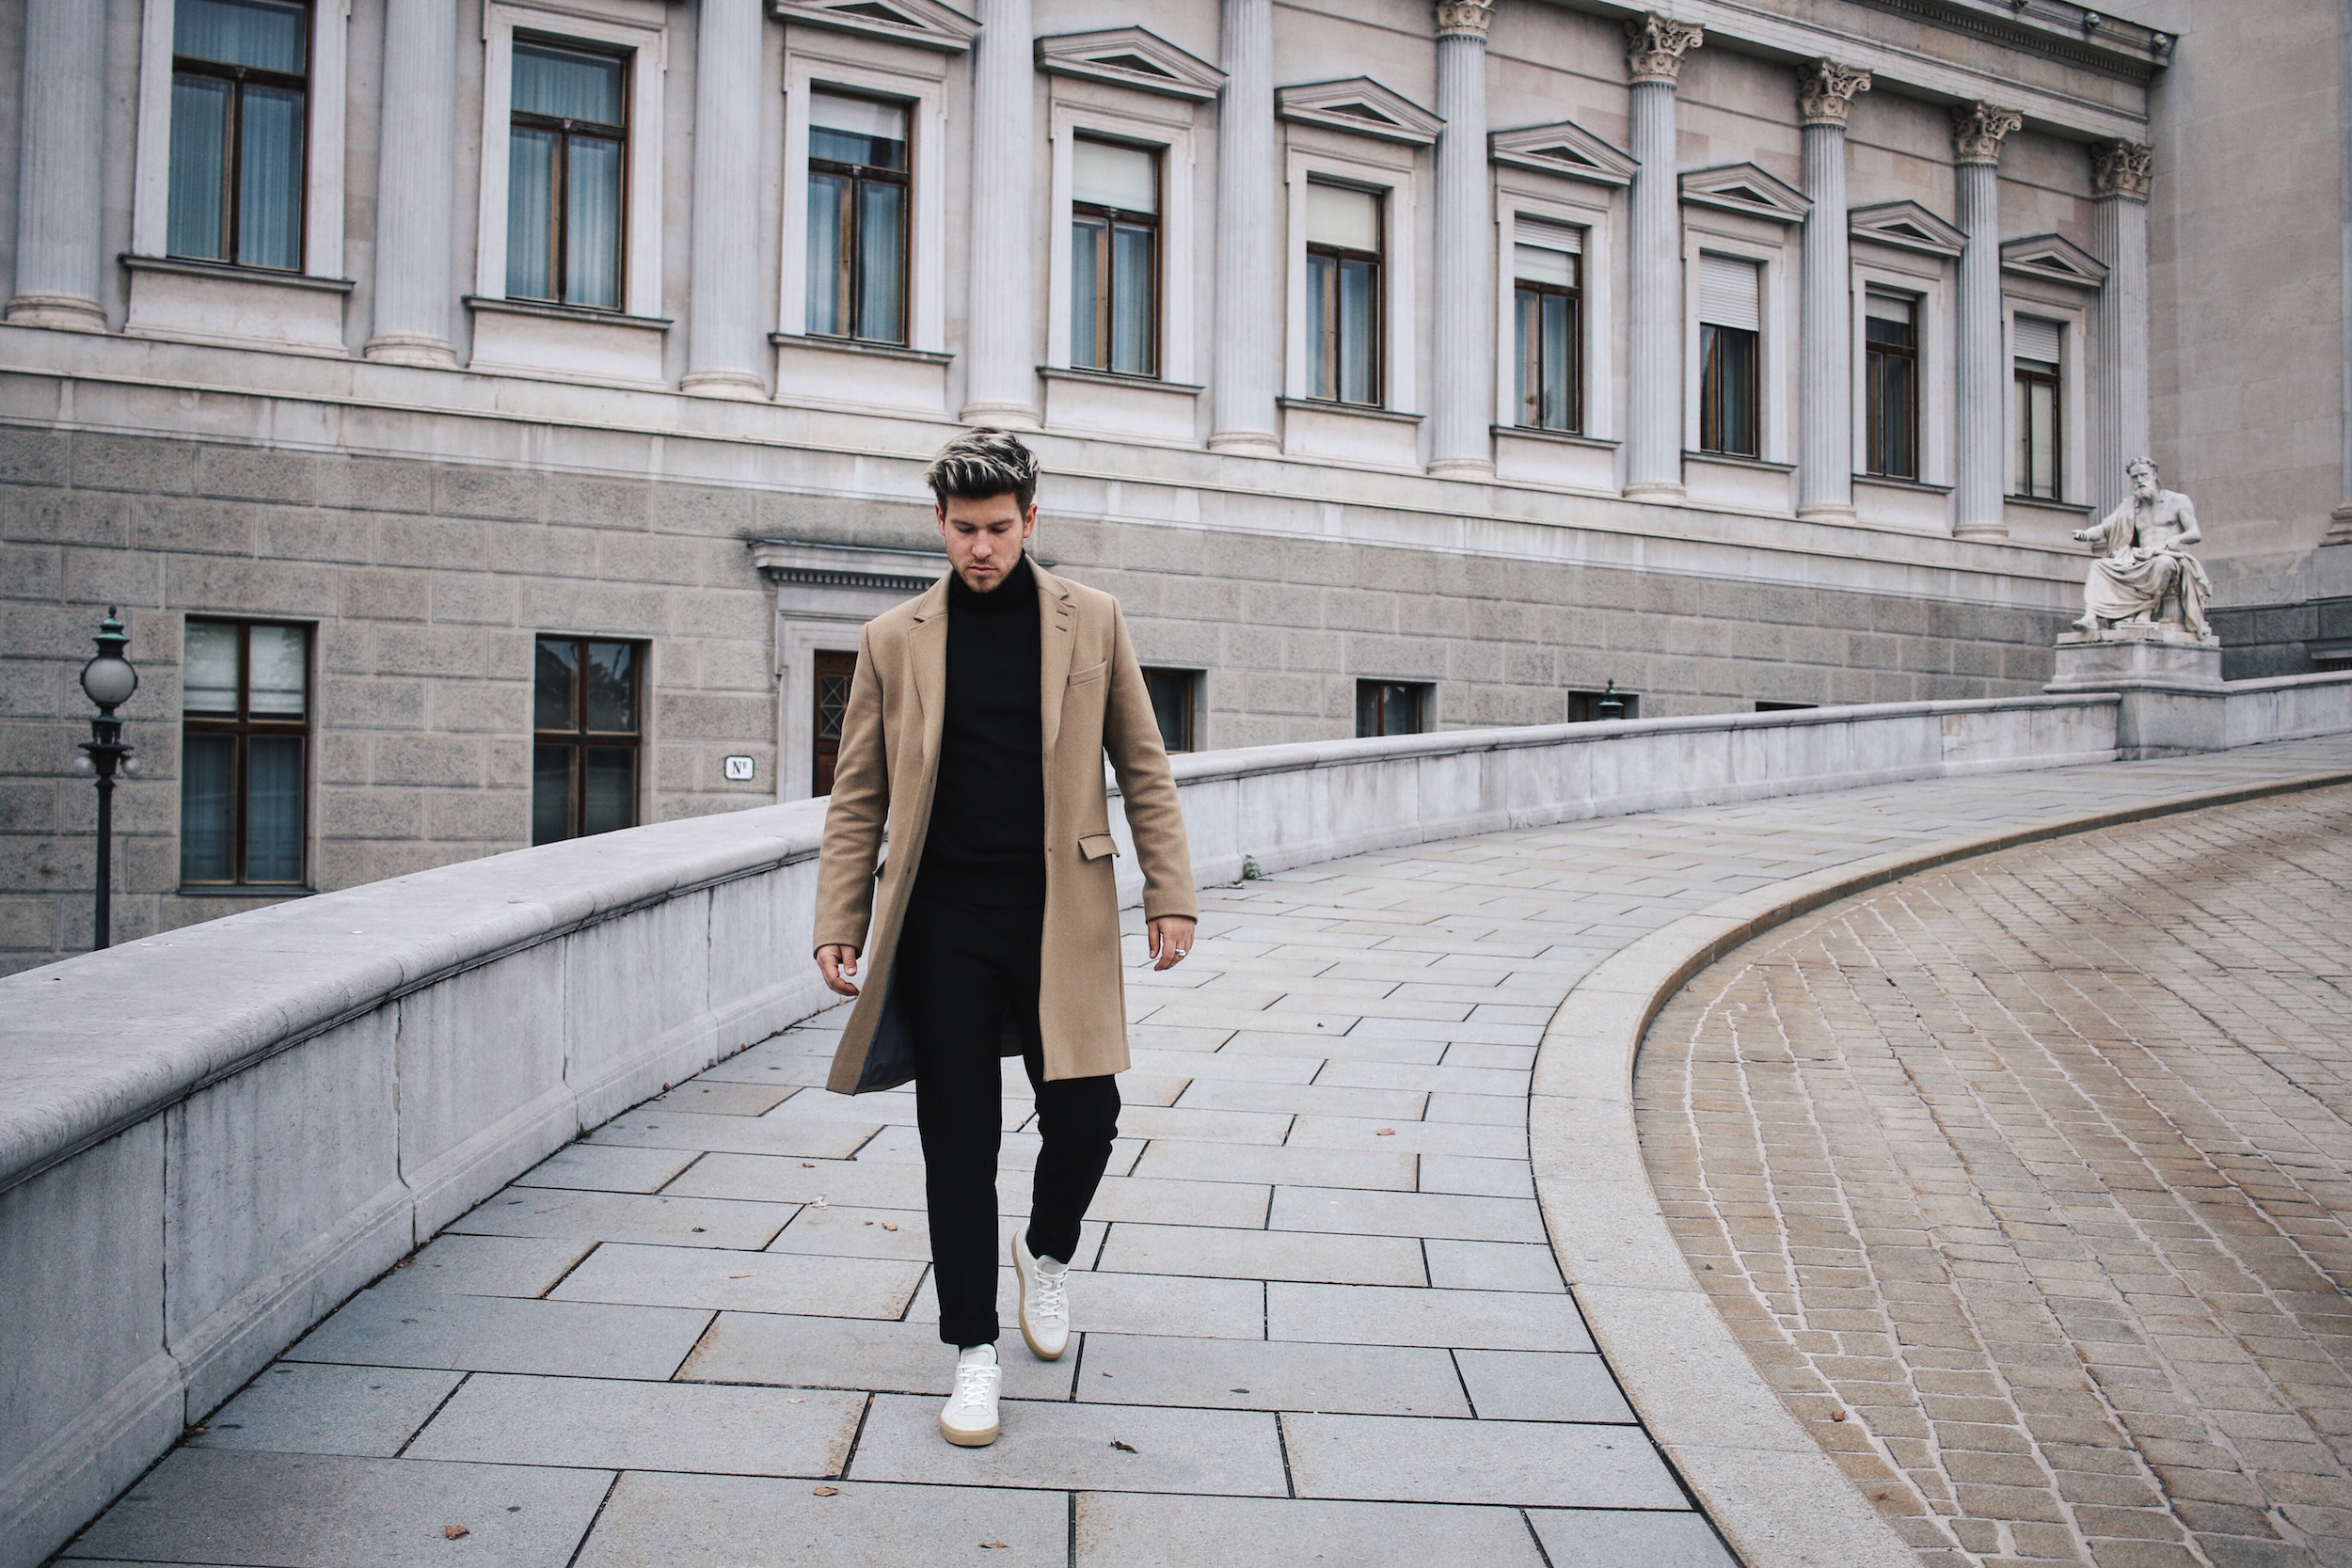 Tiger of Sweden Camel Coat_Turtleneck Sweater_All Black_VOR Shoes_Outfit by Meanwhile in Awesometown_Austrian Mens Fashion and Lifestyle Blogger 13